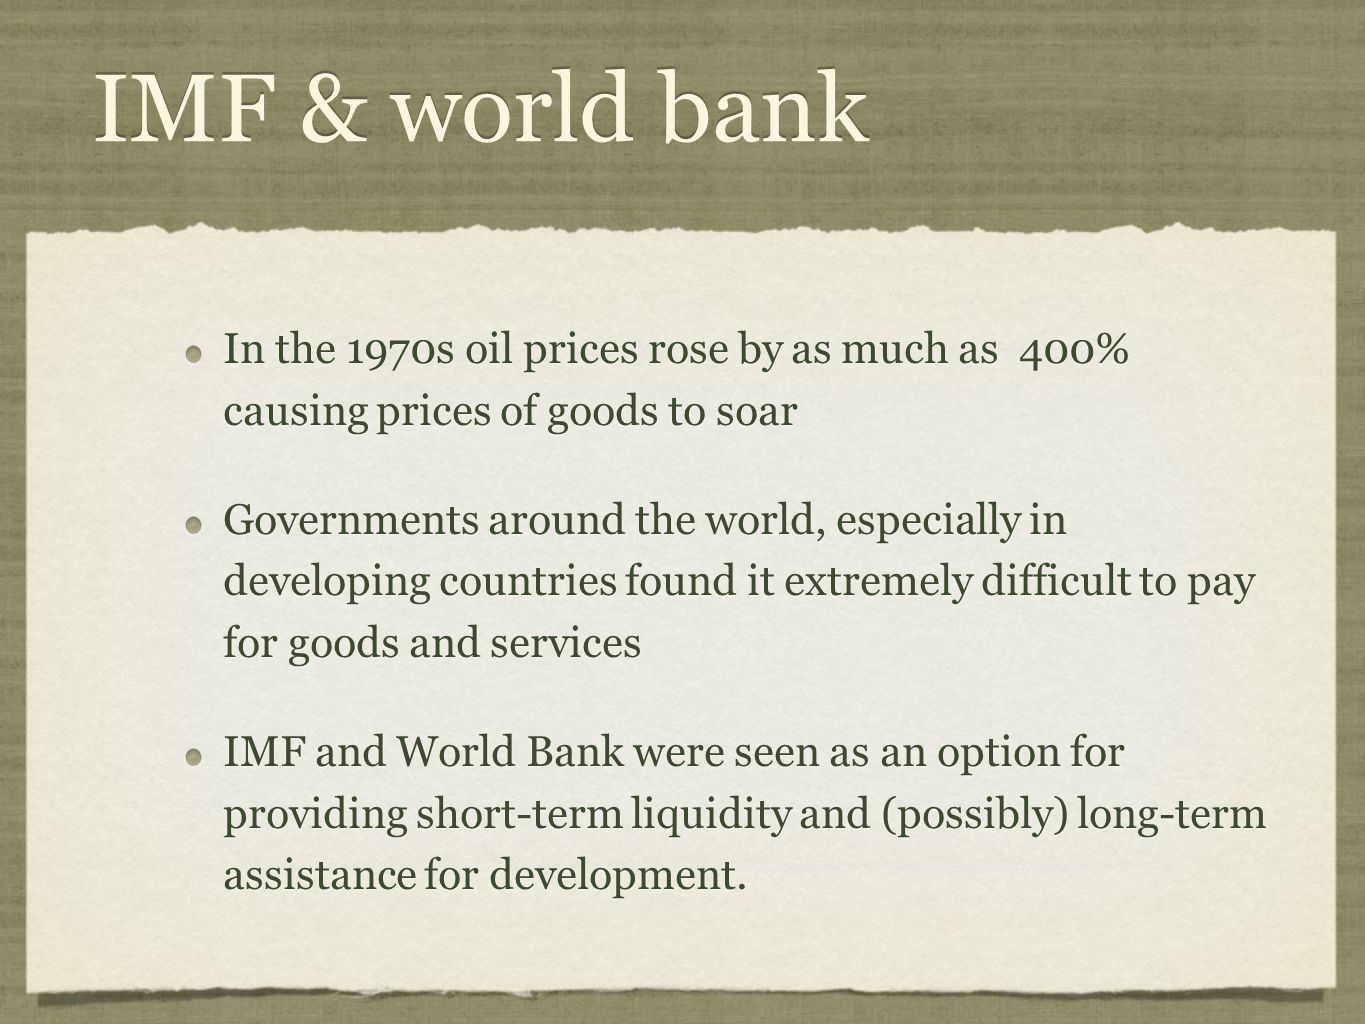 IMF & world bank In the 1970s oil prices rose by as much as 400% causing prices of goods to soar.